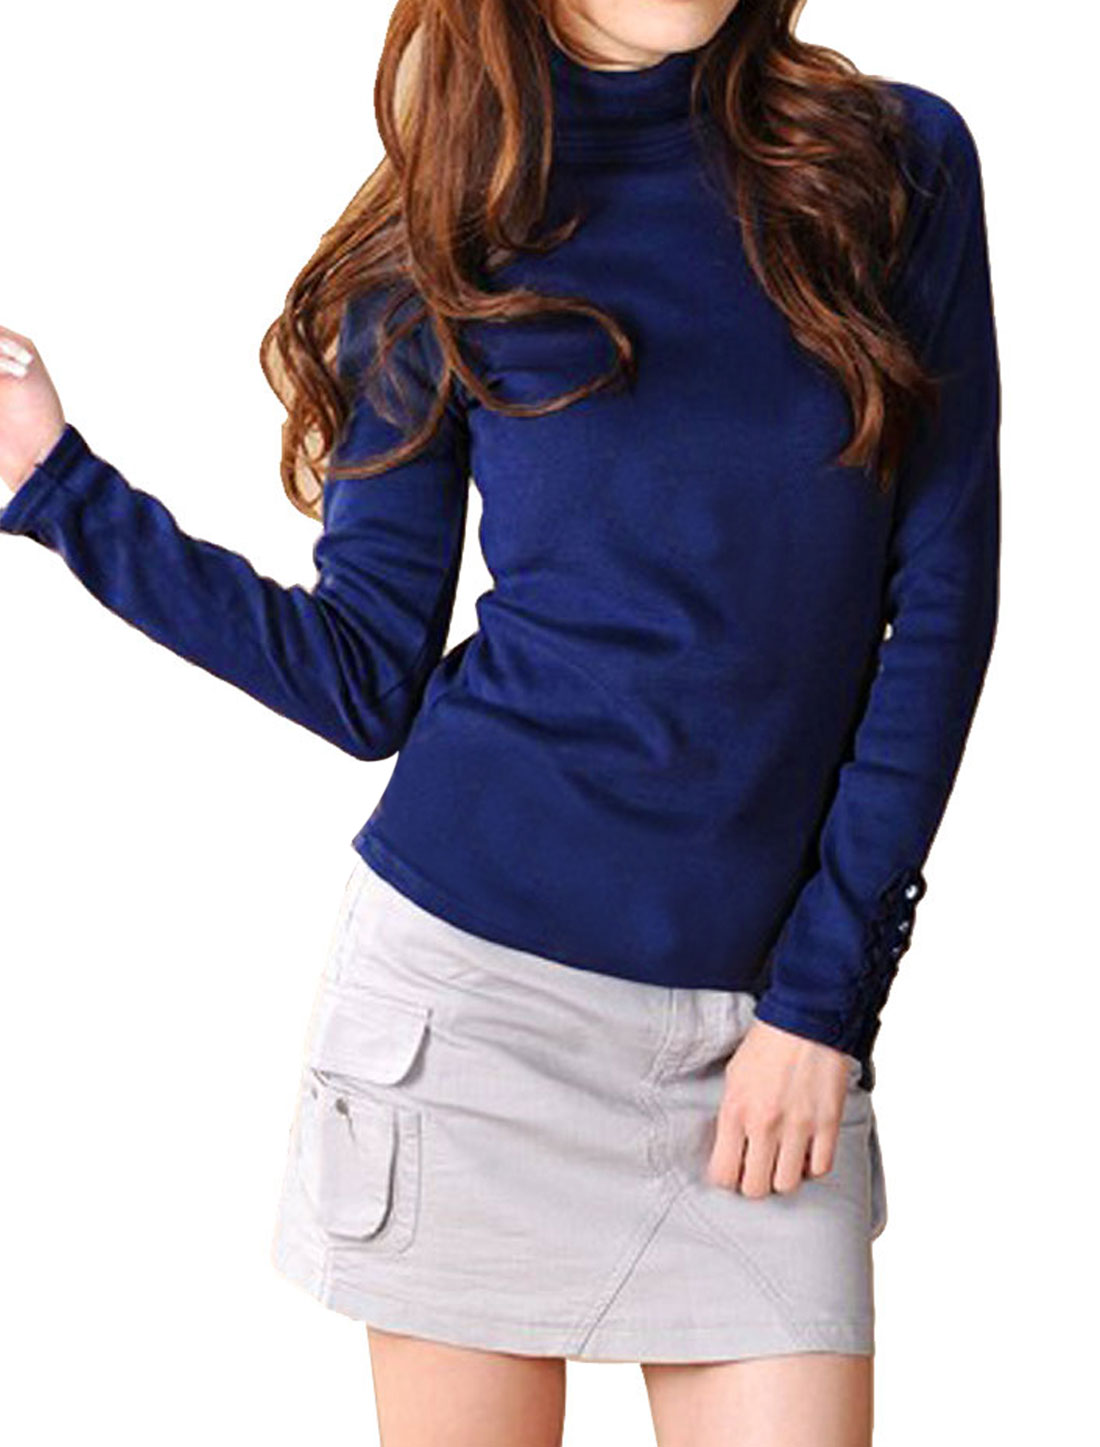 XS Royal Blue Long Sleeve Closefitting Shirt for Woman